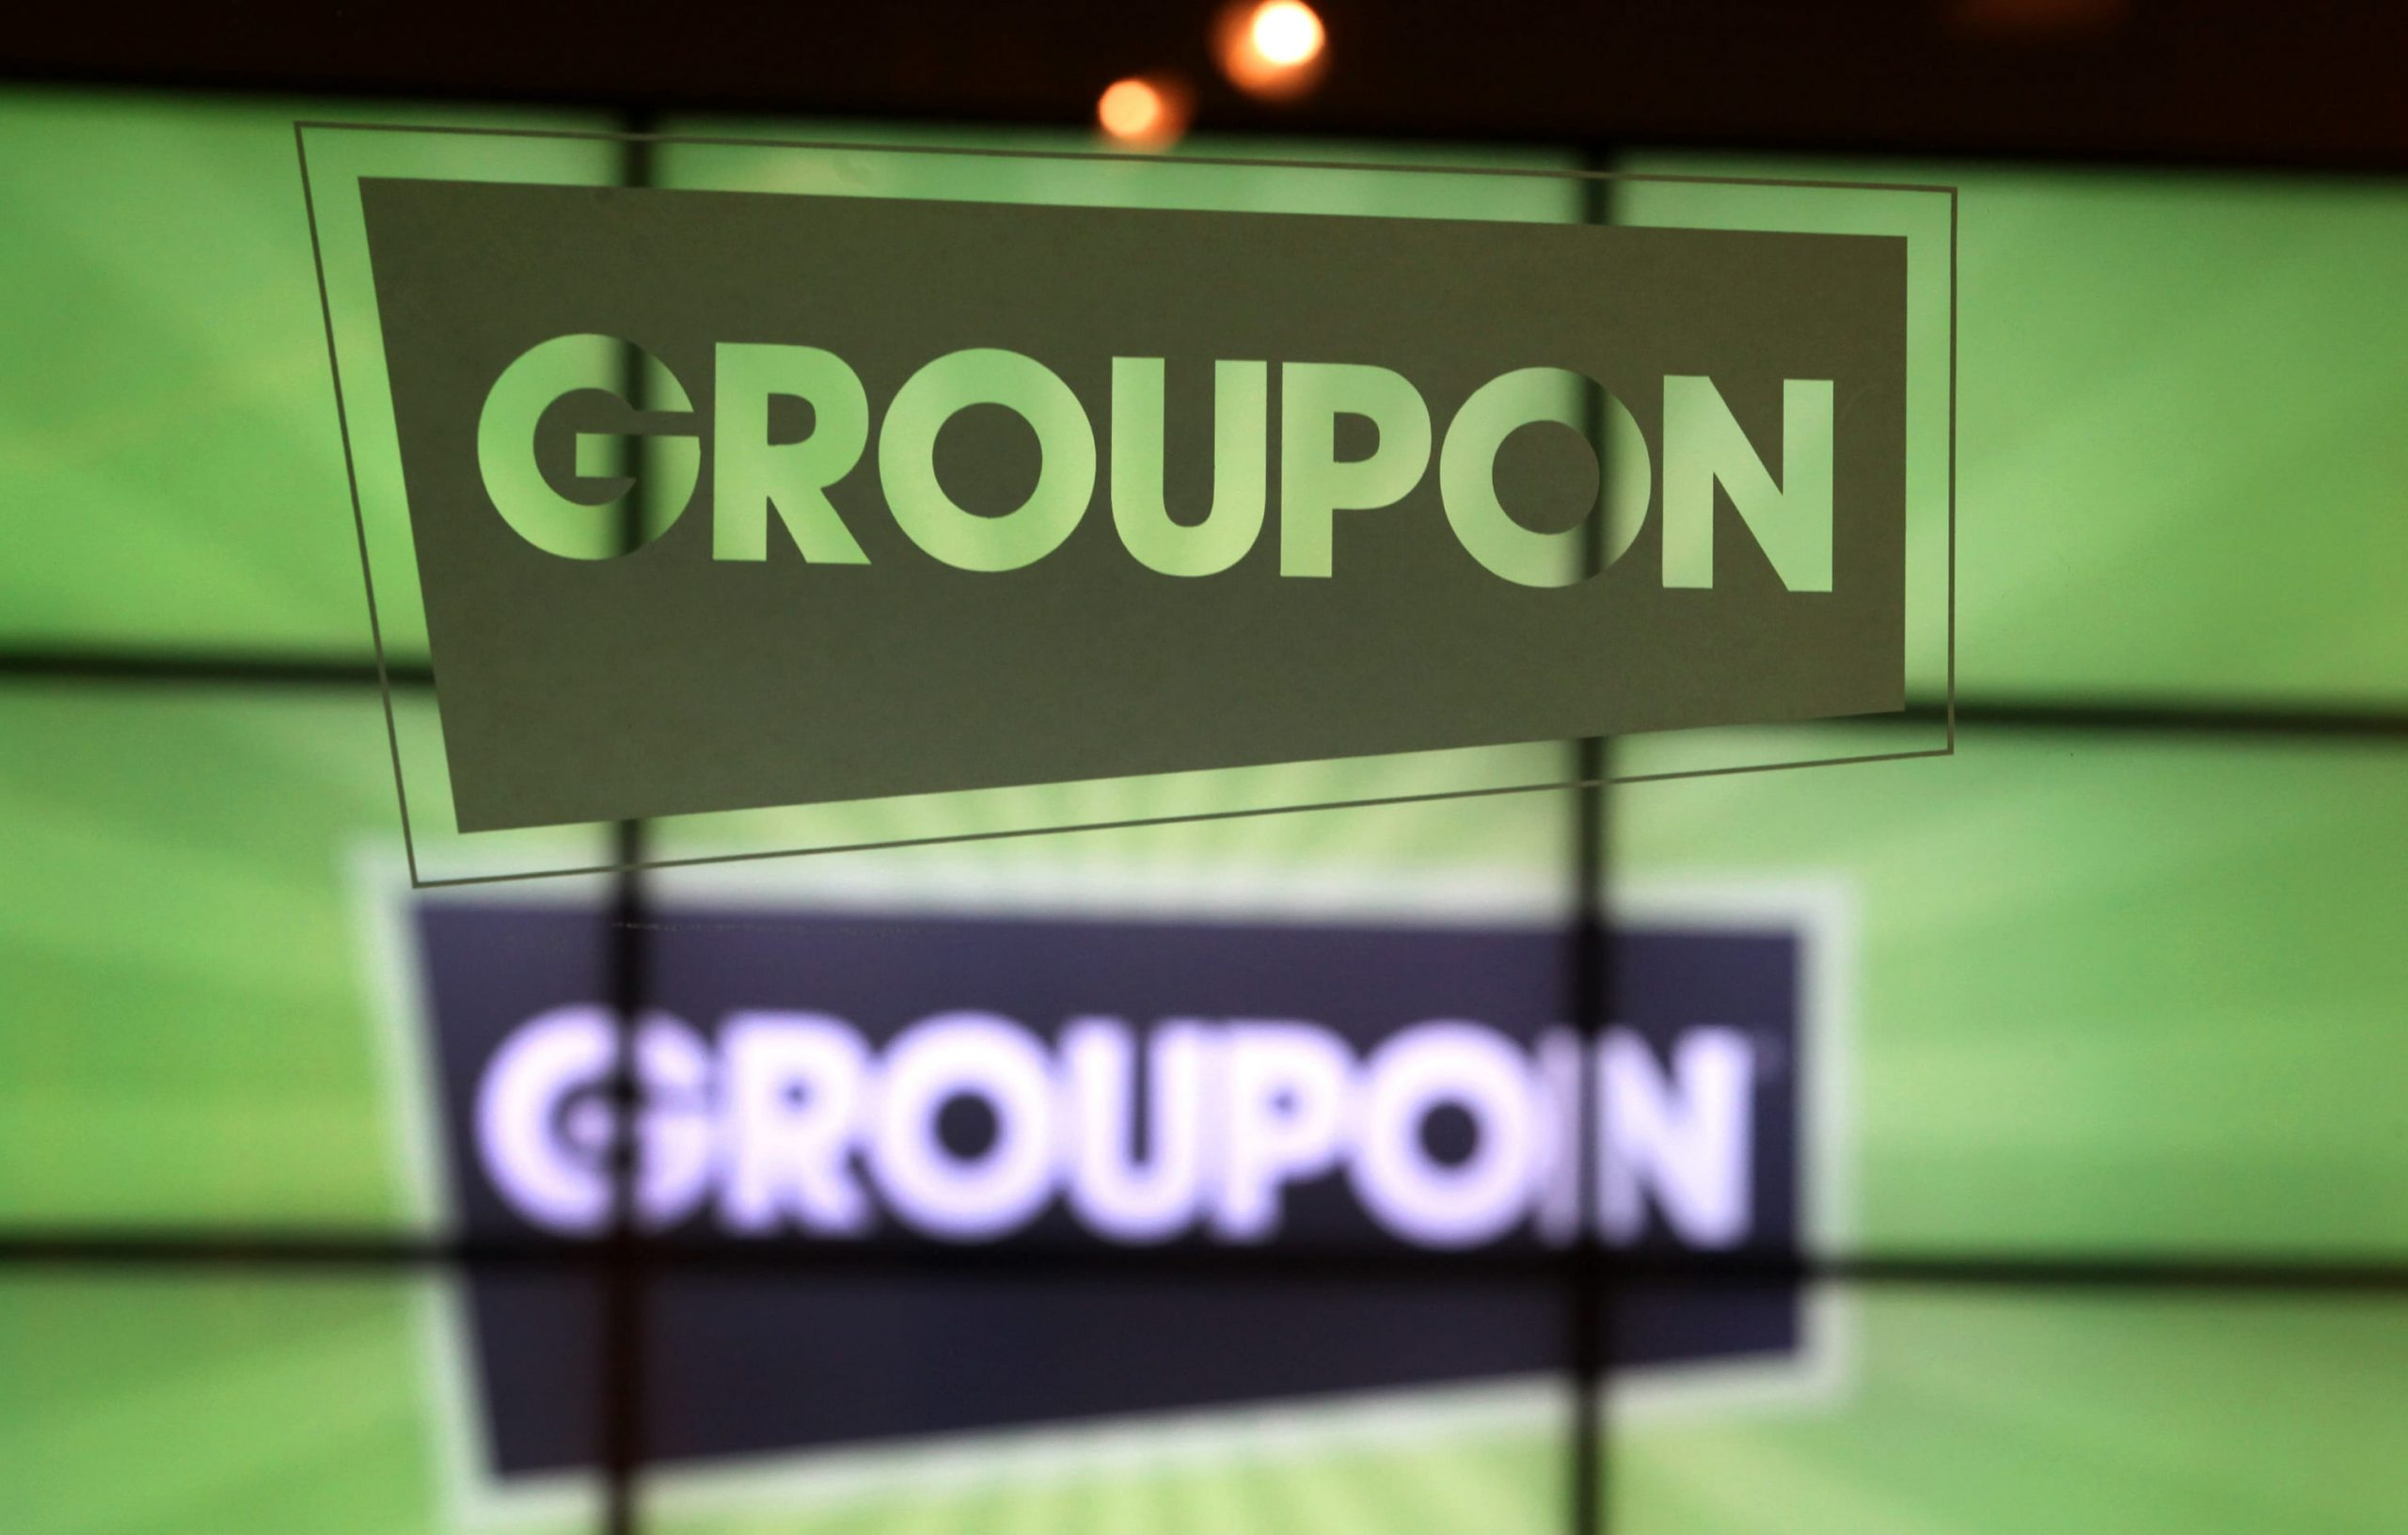 Shares of Groupon fall over 20% after fourth-quarter earnings and revenue miss estimates